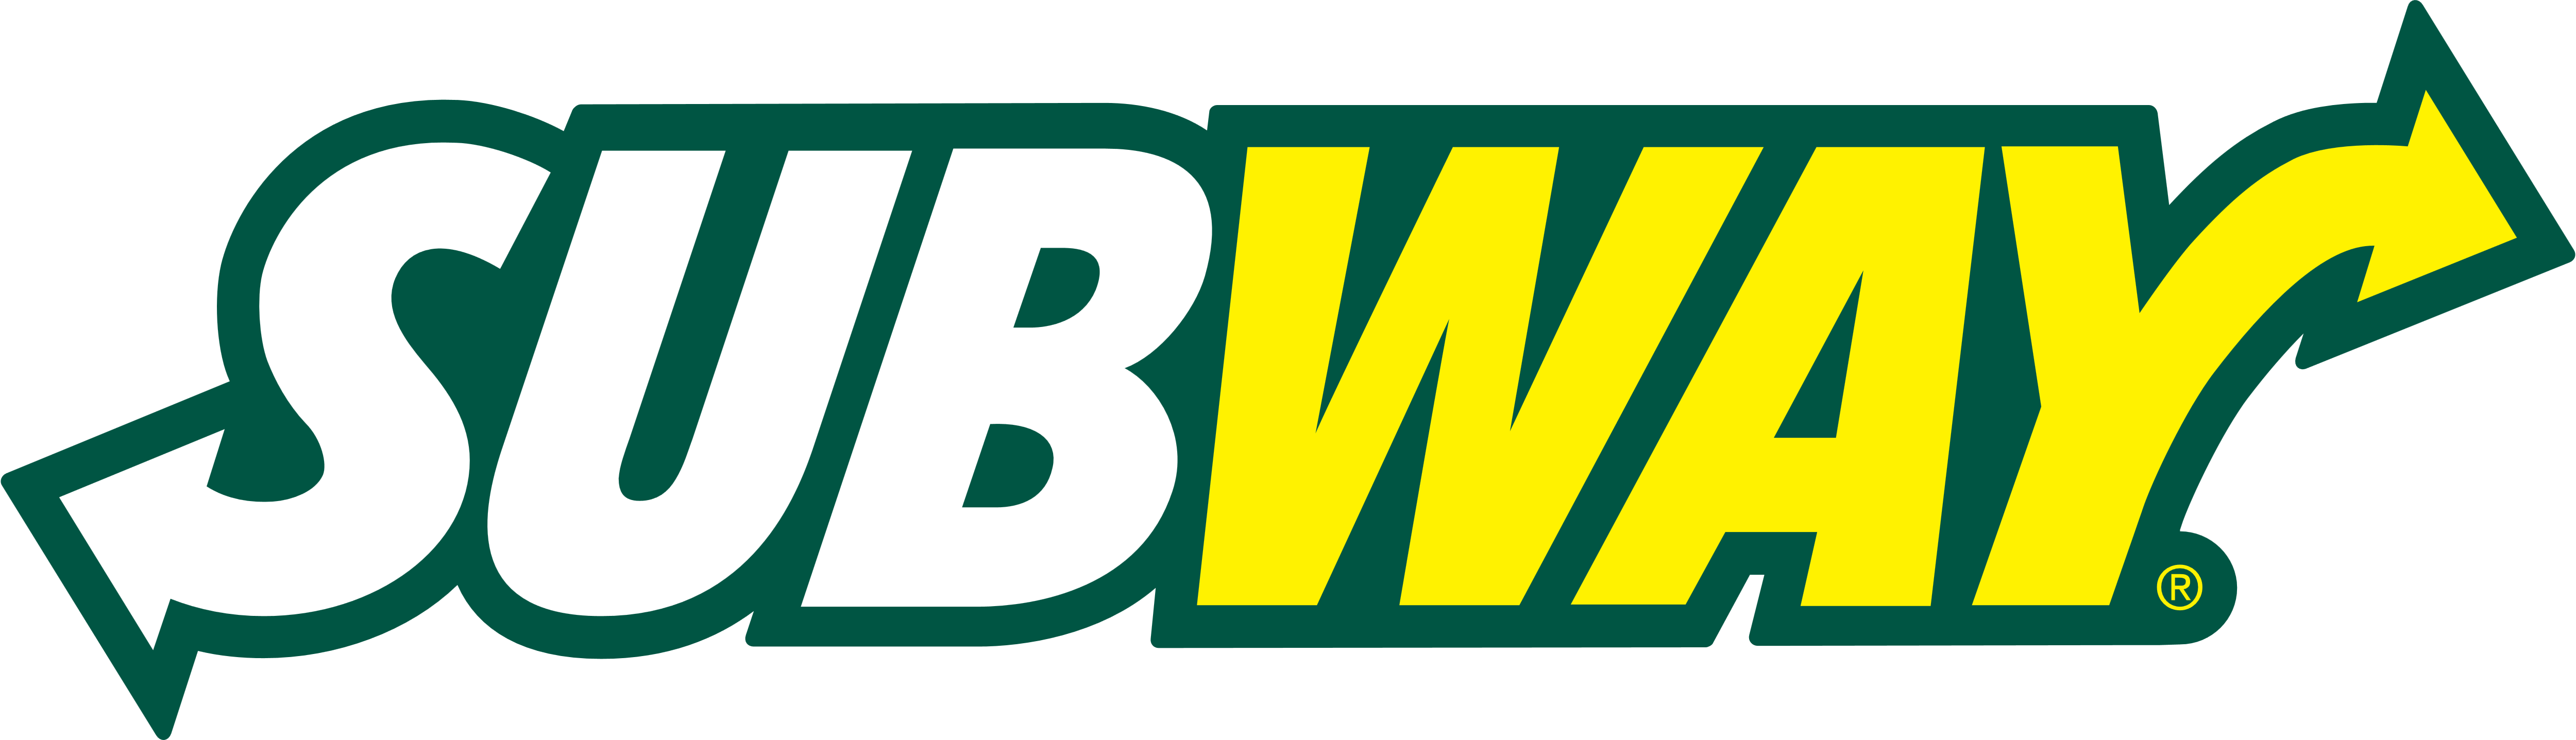 Subway logo, logotype, emblem